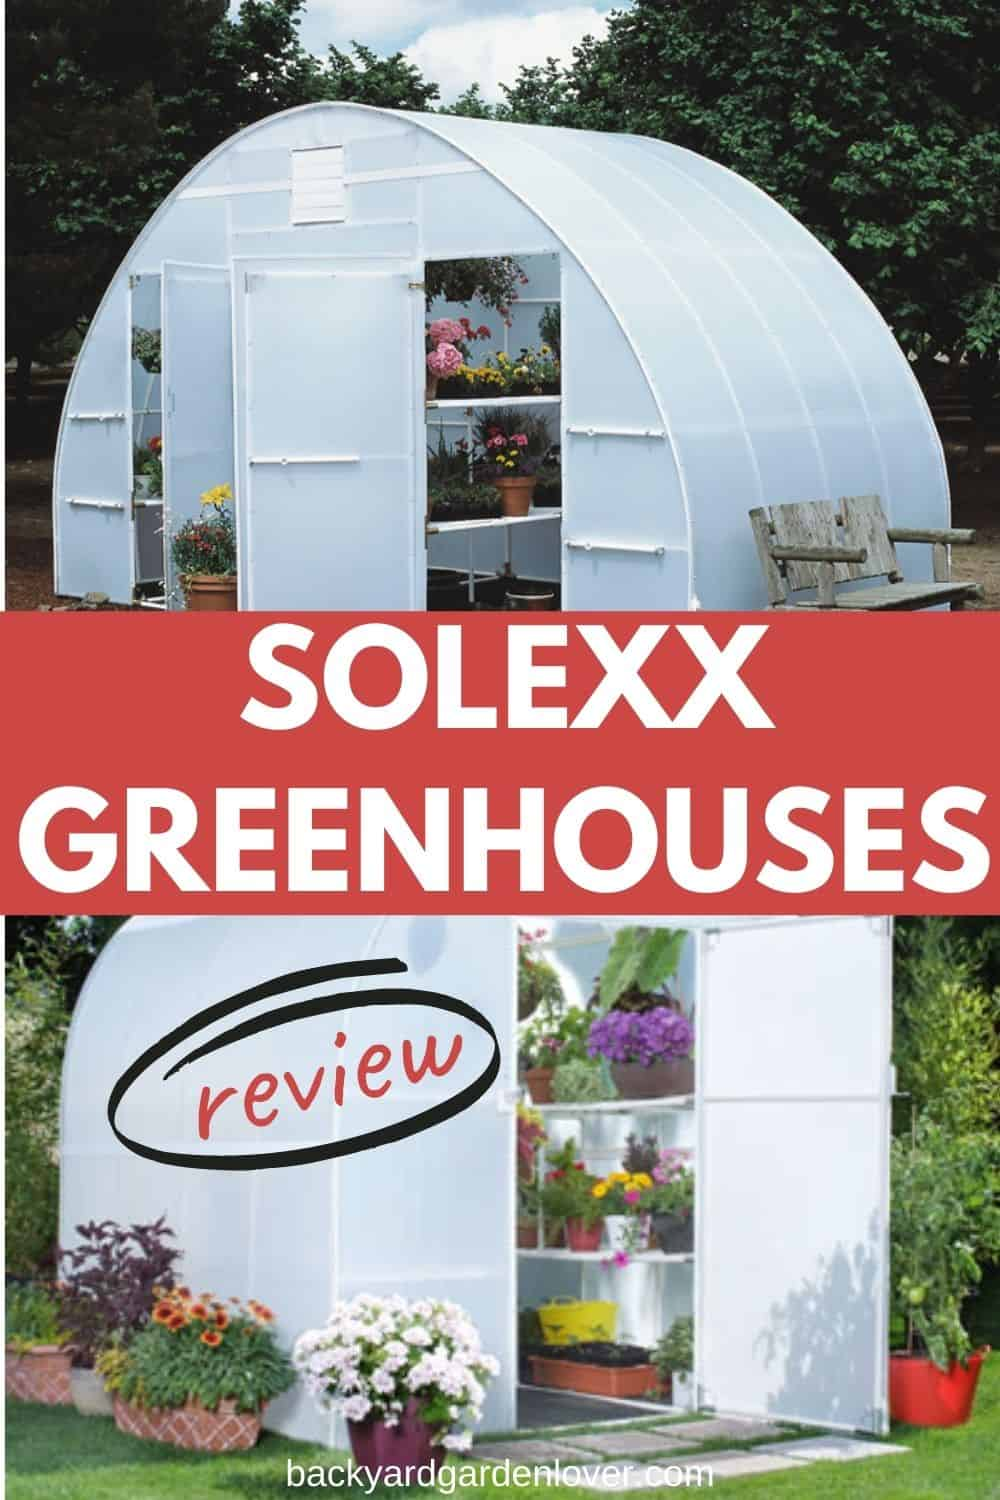 Solexx greenhouse review - Pinterest image